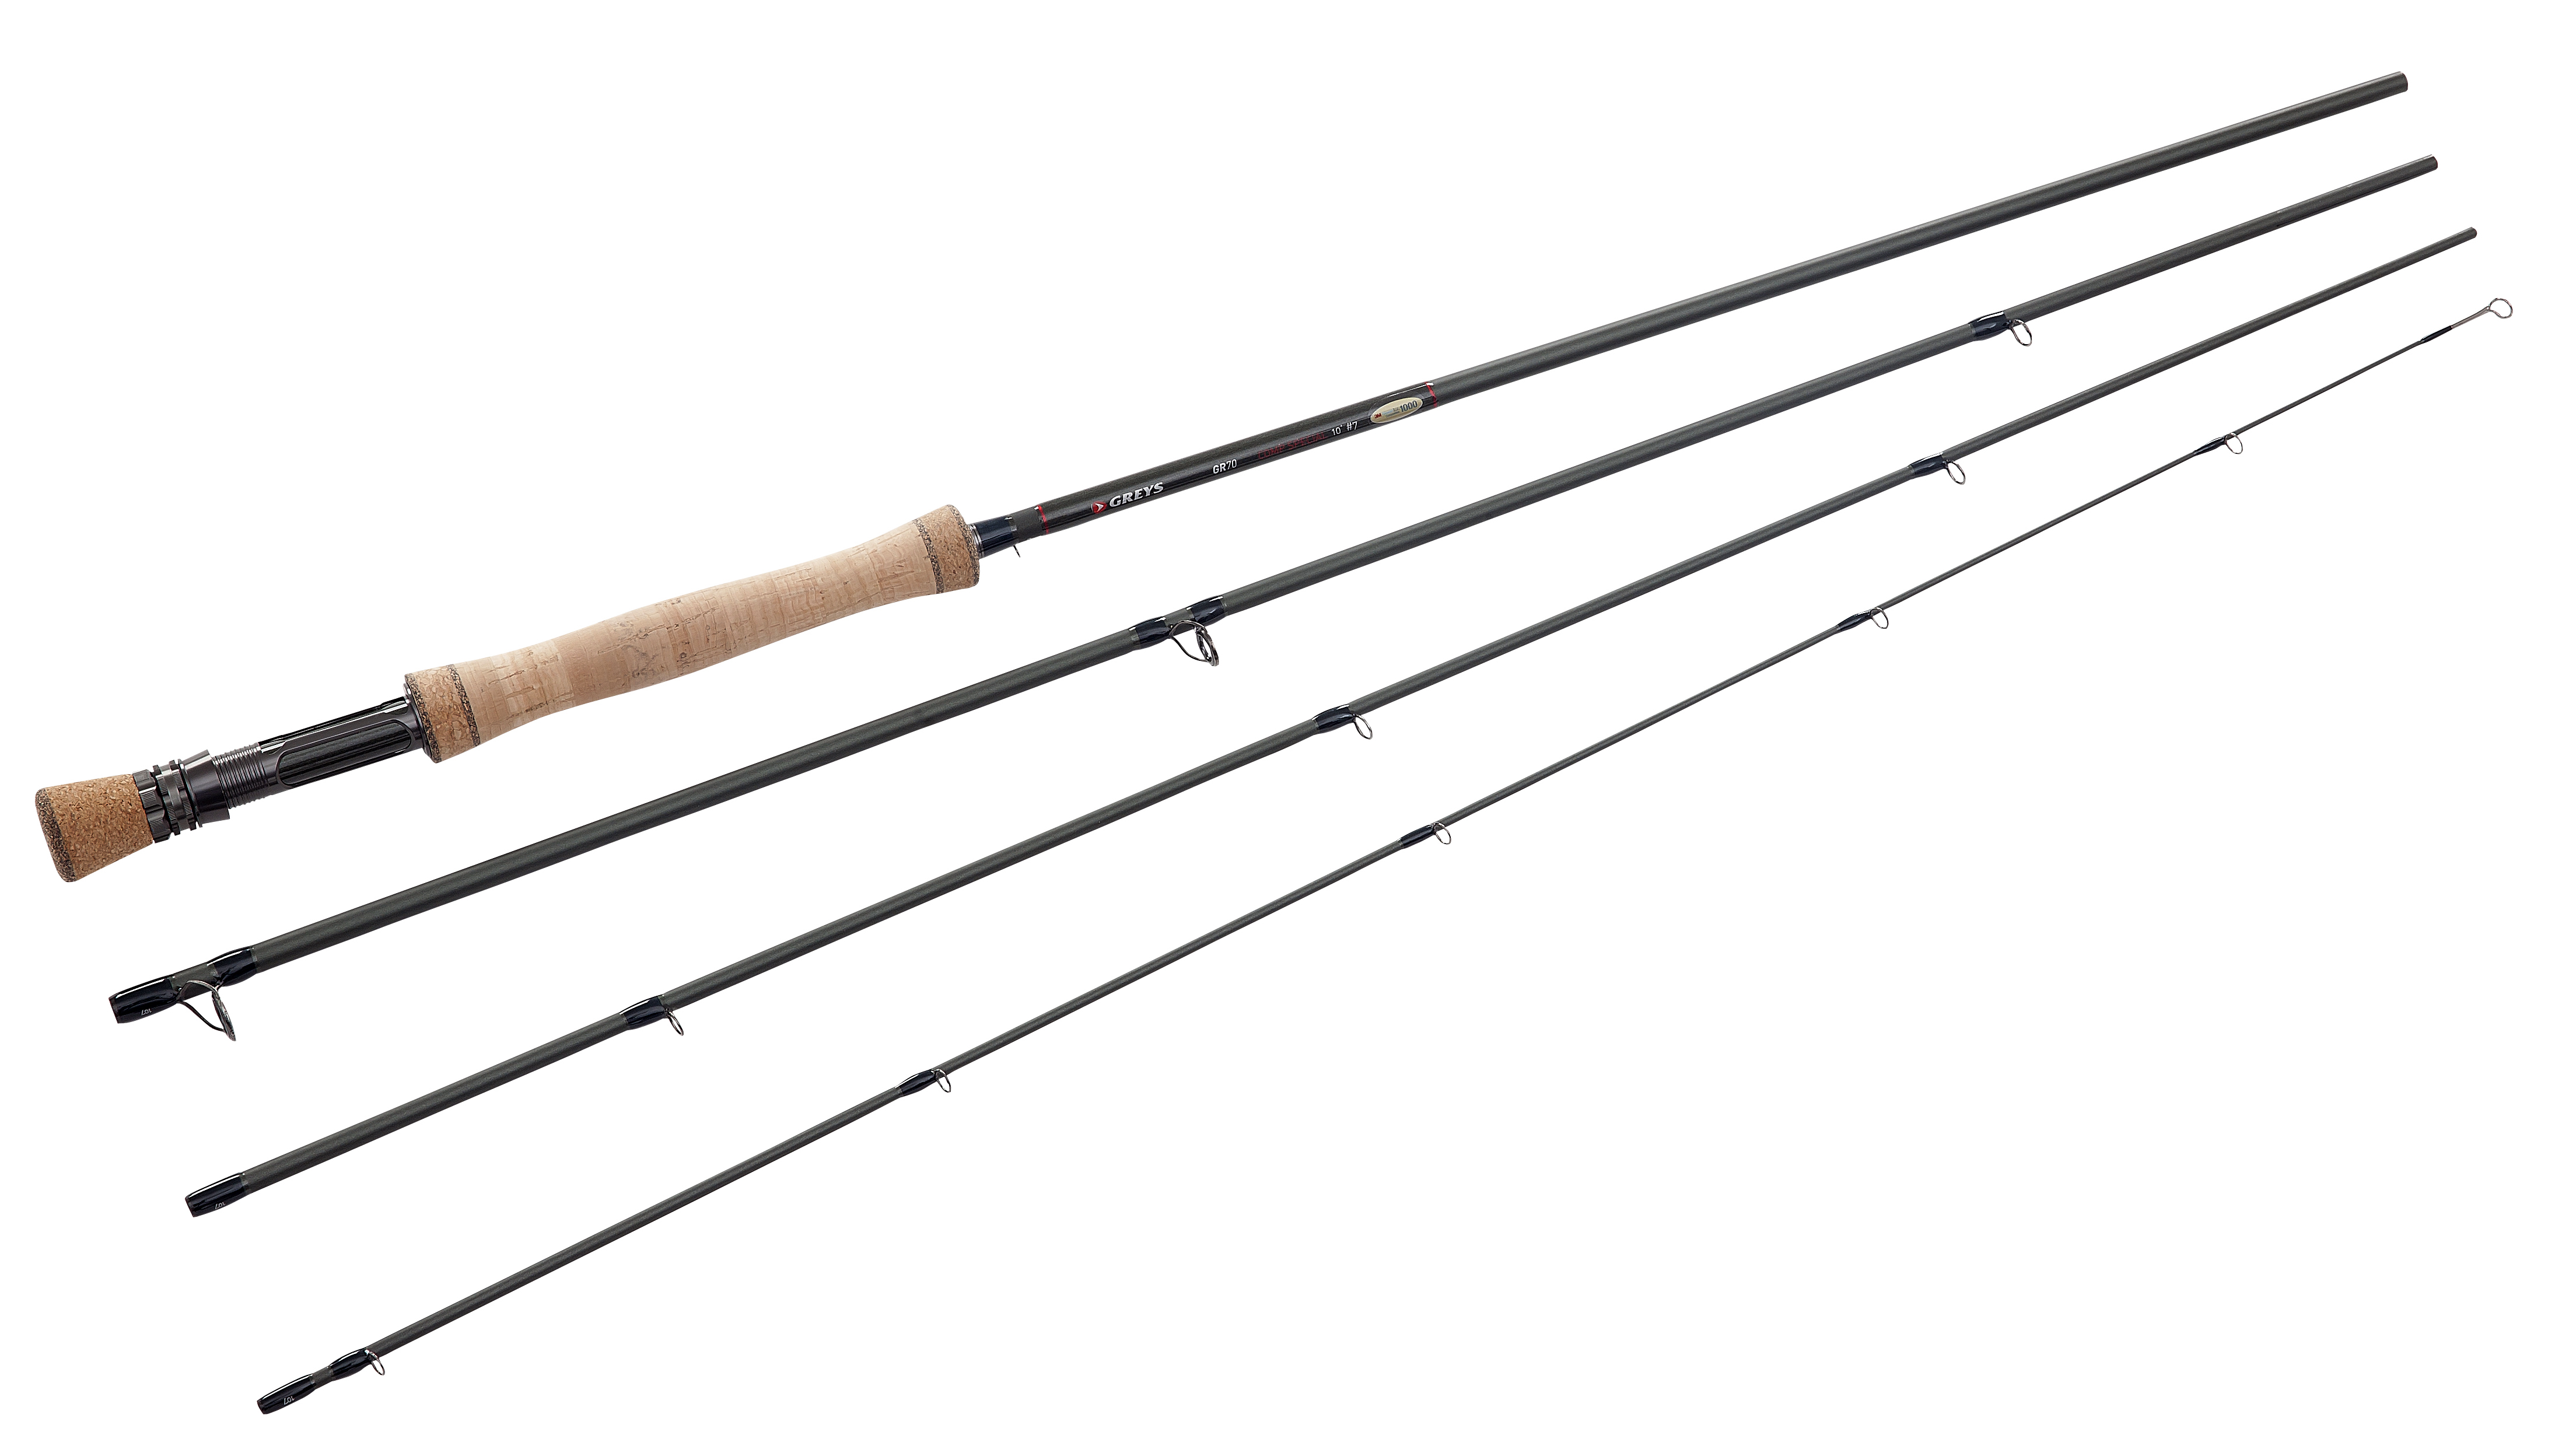 Greys gr70 comp special powerlux single hand fly rods for Fly fishing stores